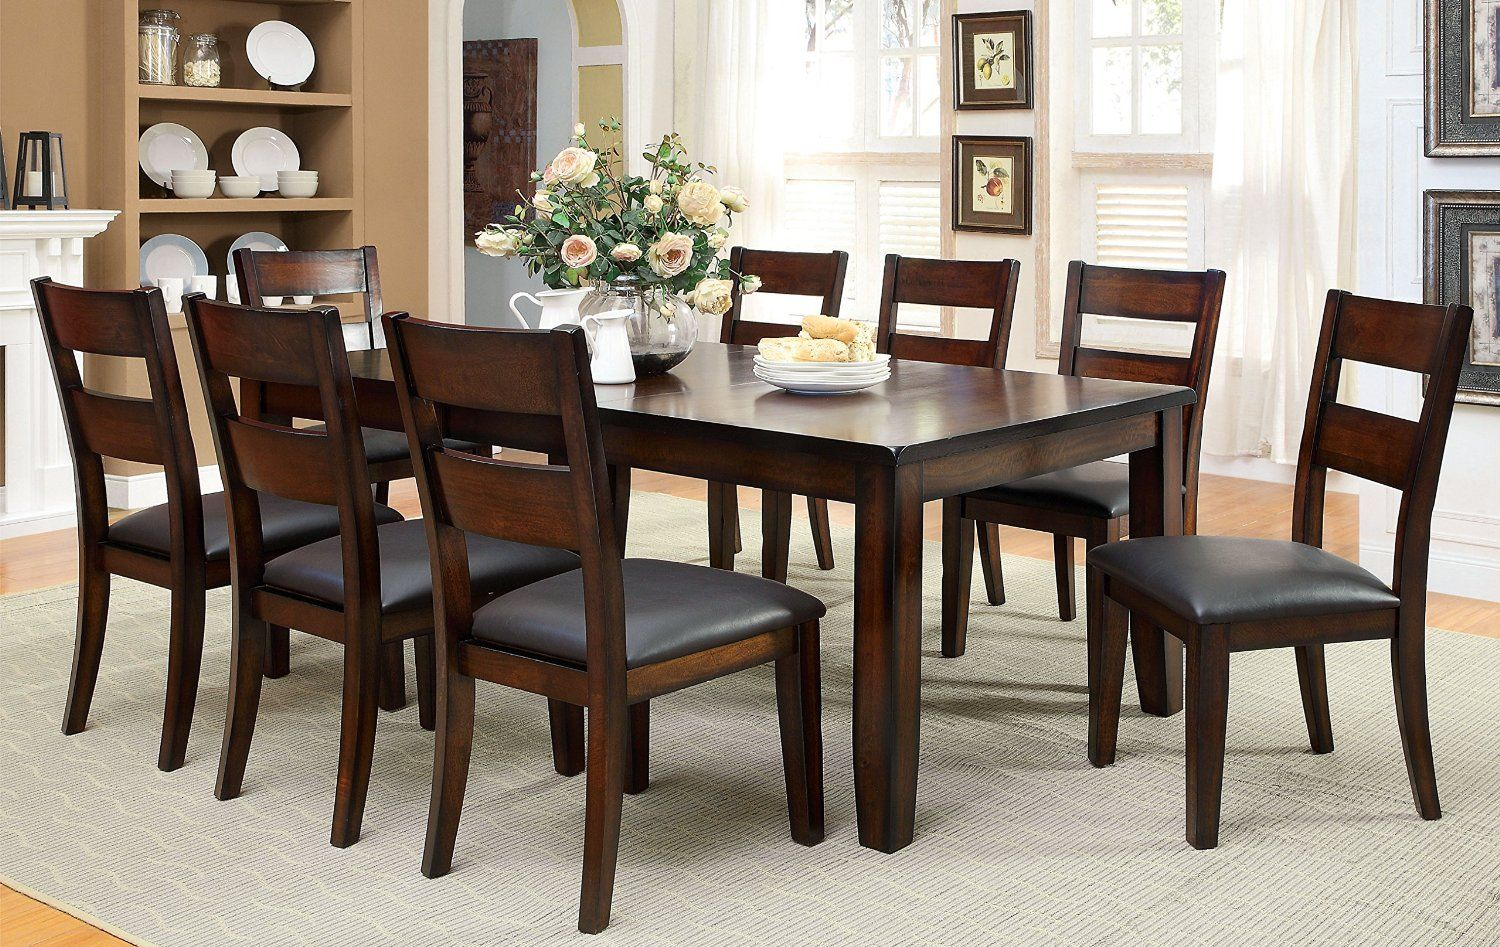 9 Piece Transitional Dining Room Furniture Set Dark Cherry For 8 People Dining Room Furniture Sets Solid Wood Dining Set Dining Room Sets Bold Dining Table